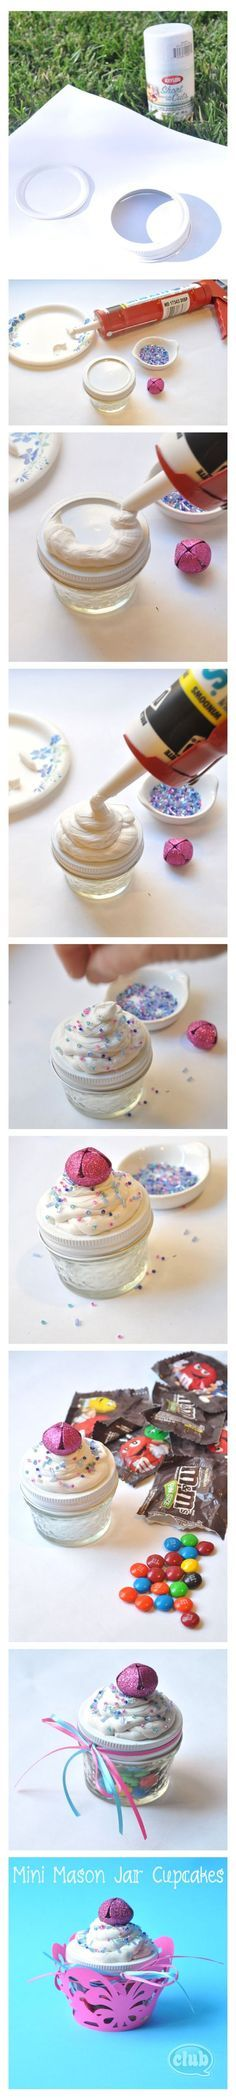 DIY Mason jar cupcakes! this is SO CUTE!